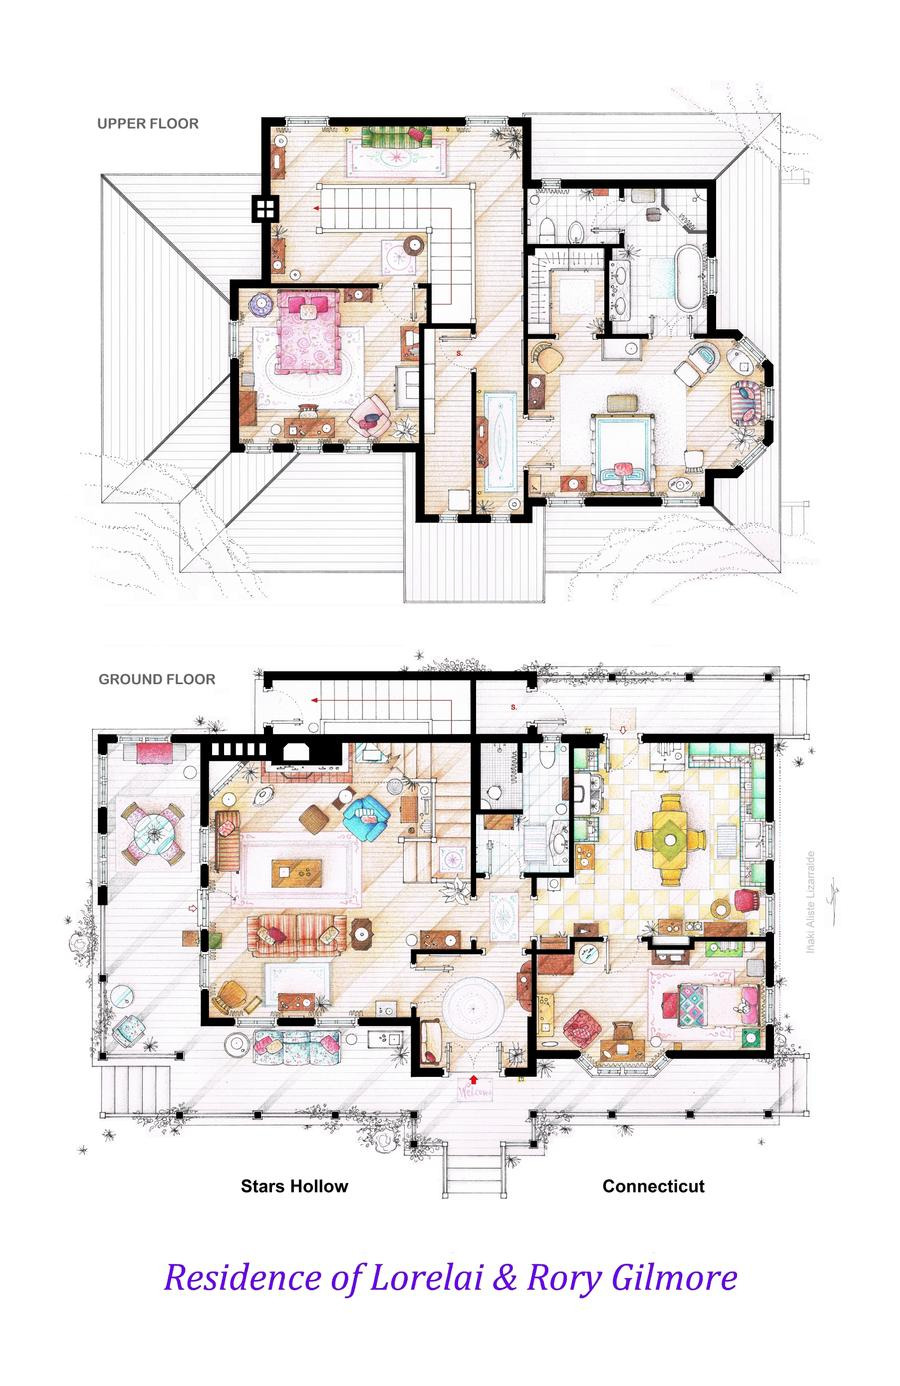 house of lorelai and rory gilmore floorplans by nikneuk d5to28r fullview